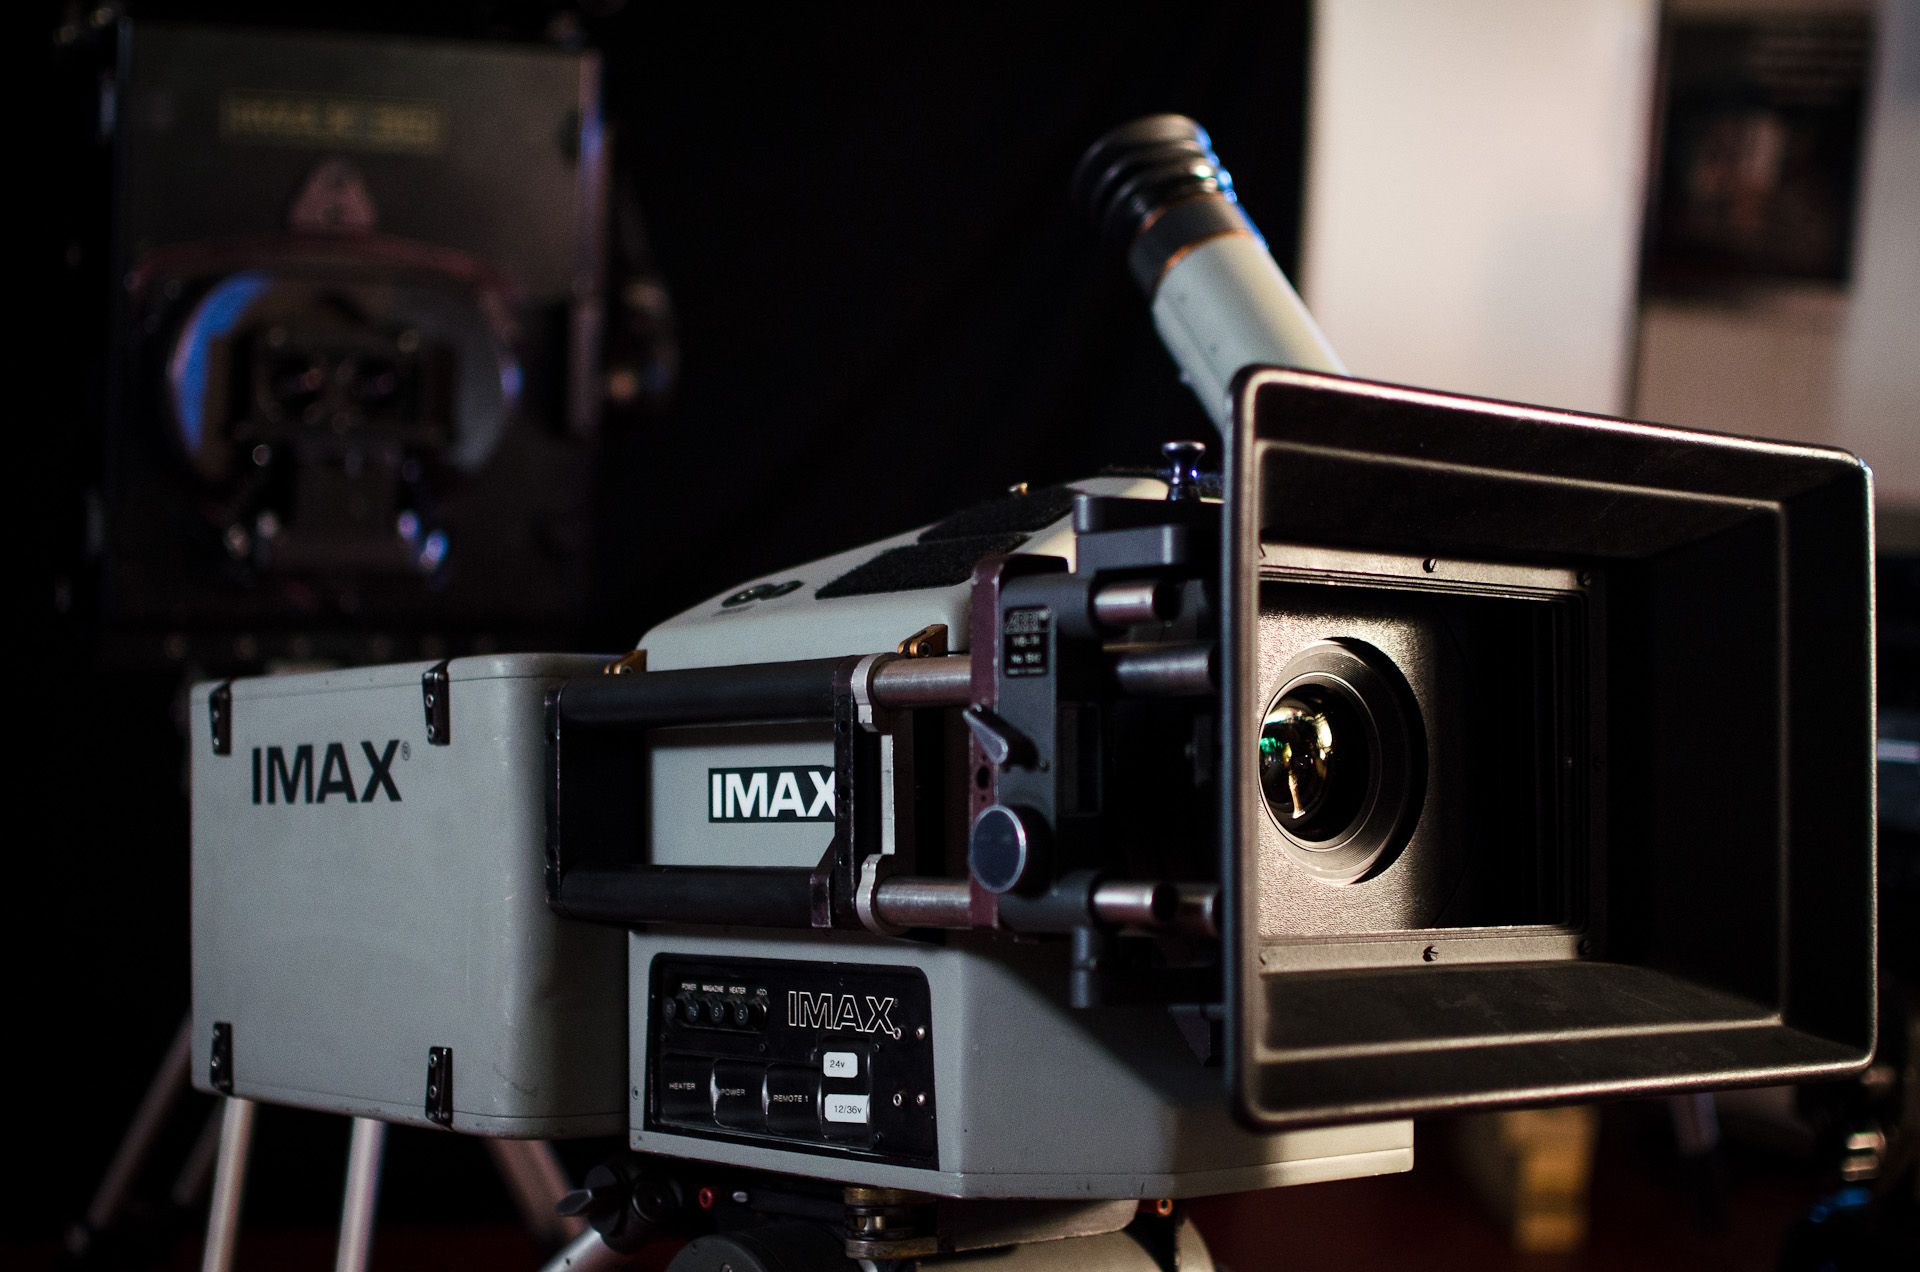 IMAX Camera used on the set of The Dark Knight Rises